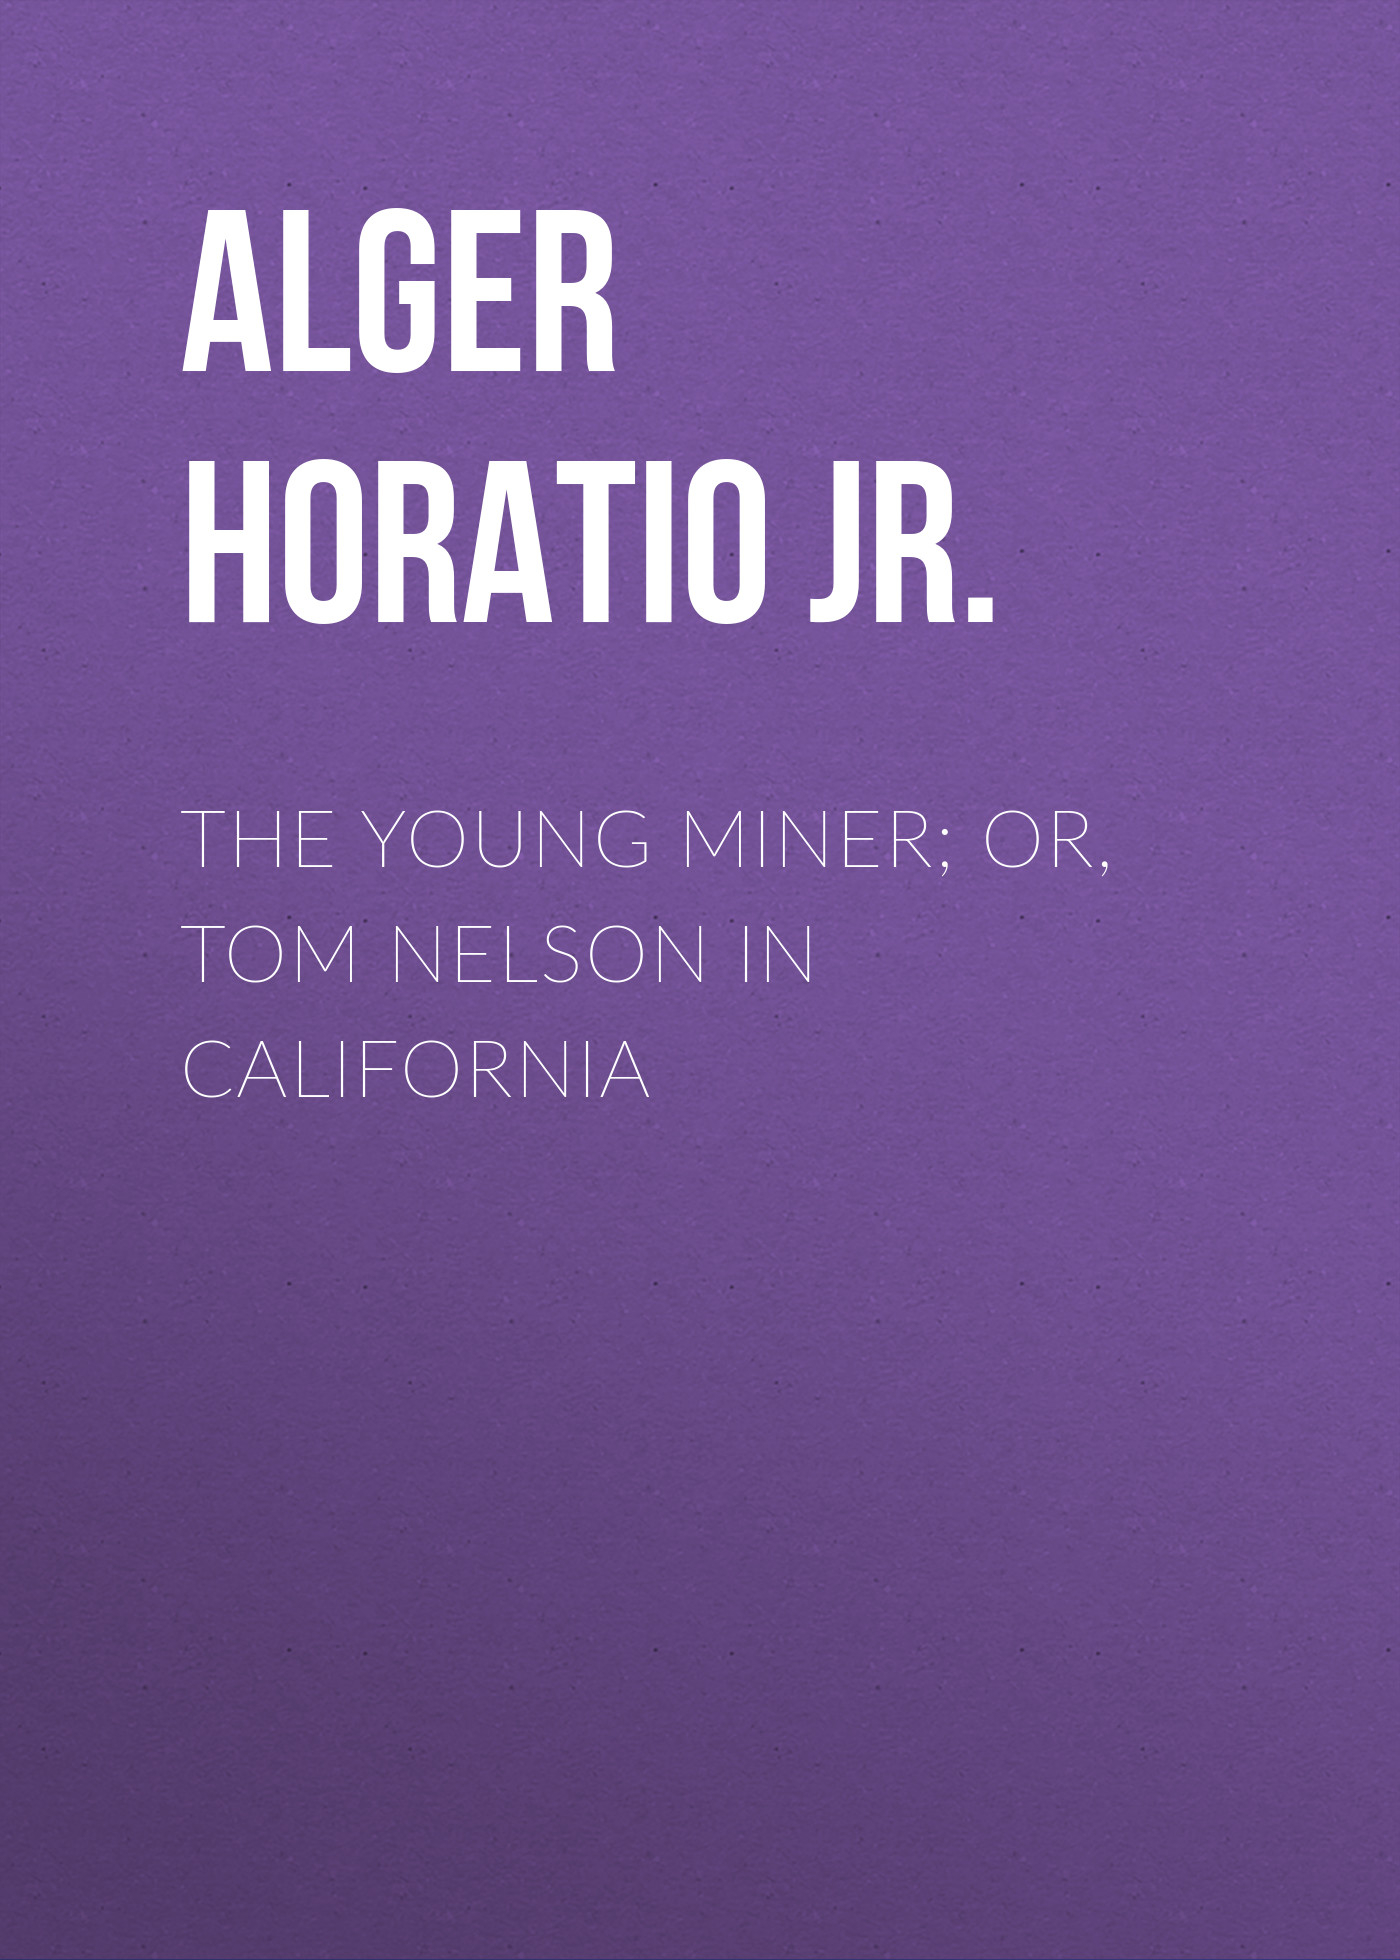 Alger Horatio Jr. The Young Miner; Or, Tom Nelson in California original access control card reader without keypad smart card reader 125khz rfid card reader door access reader manufacture